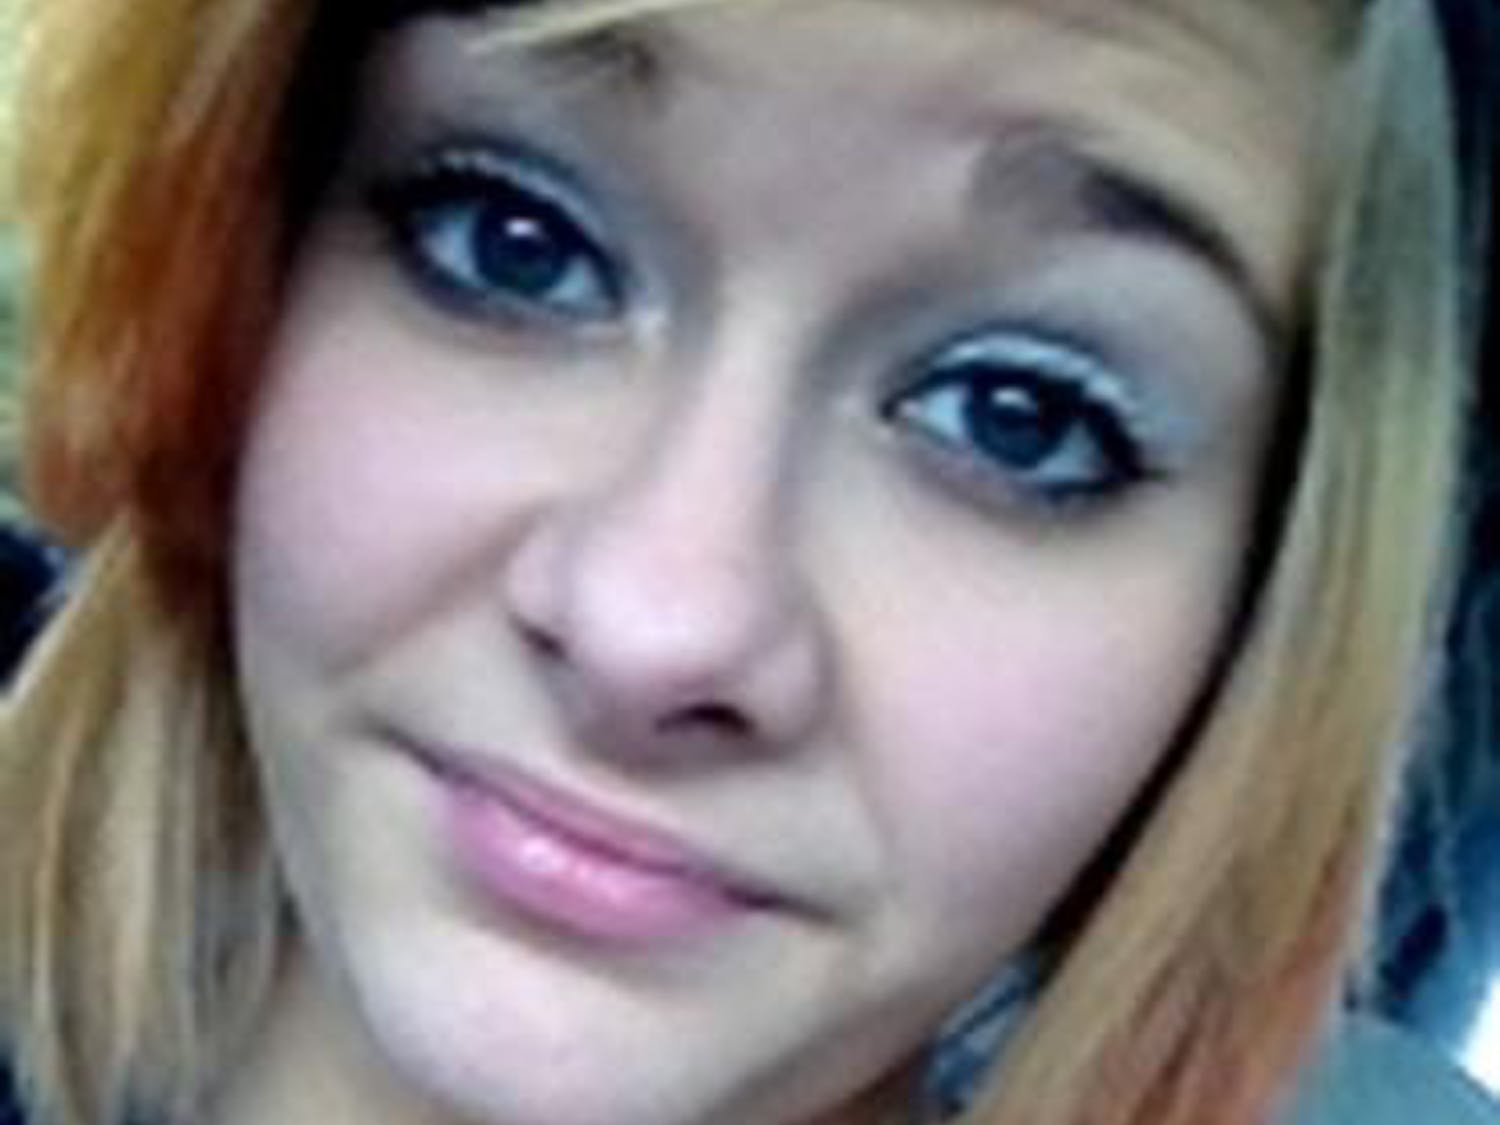 Investigators have been looking for Emily W. Paul for three years and said they now have reason to believe she may be in Madison.